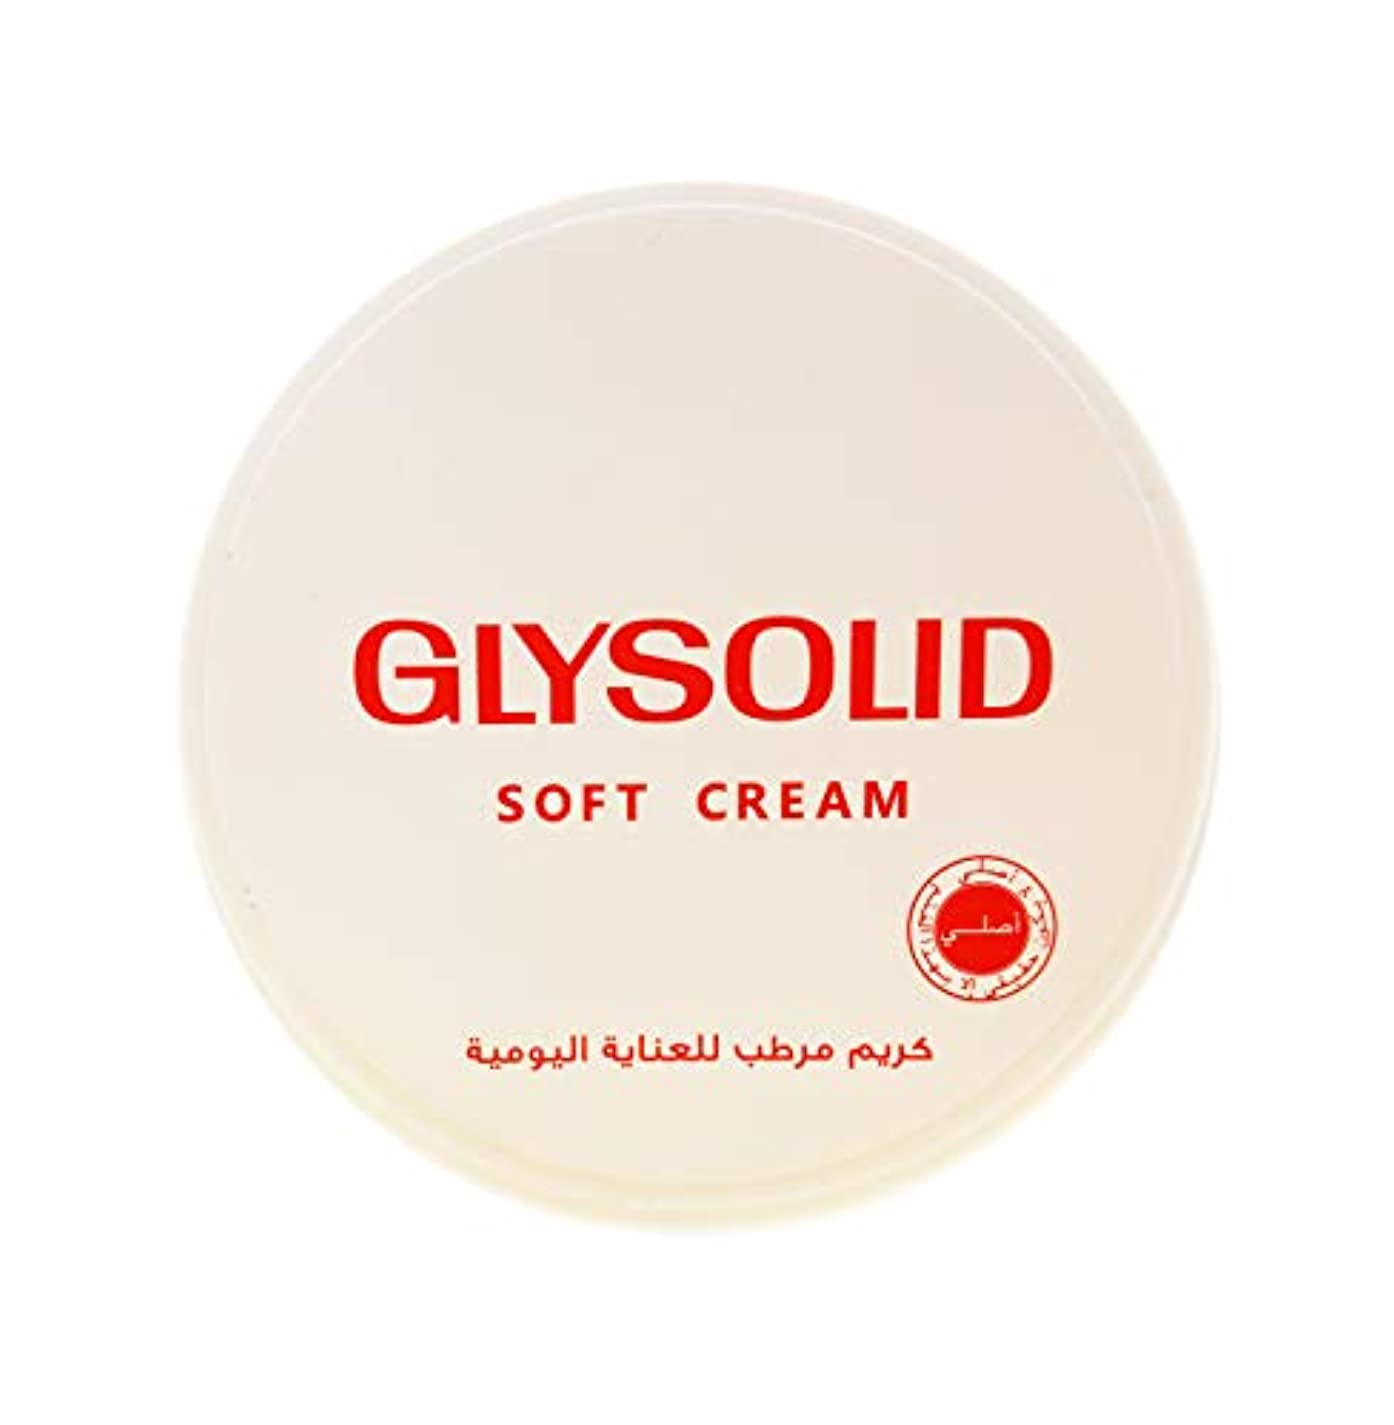 汚れた威するアーティキュレーションGlysolid Soft Cream Moisturizers For Dry Skin Face Hands Feet Elbow Body Softening With Glycerin Keeping Your...